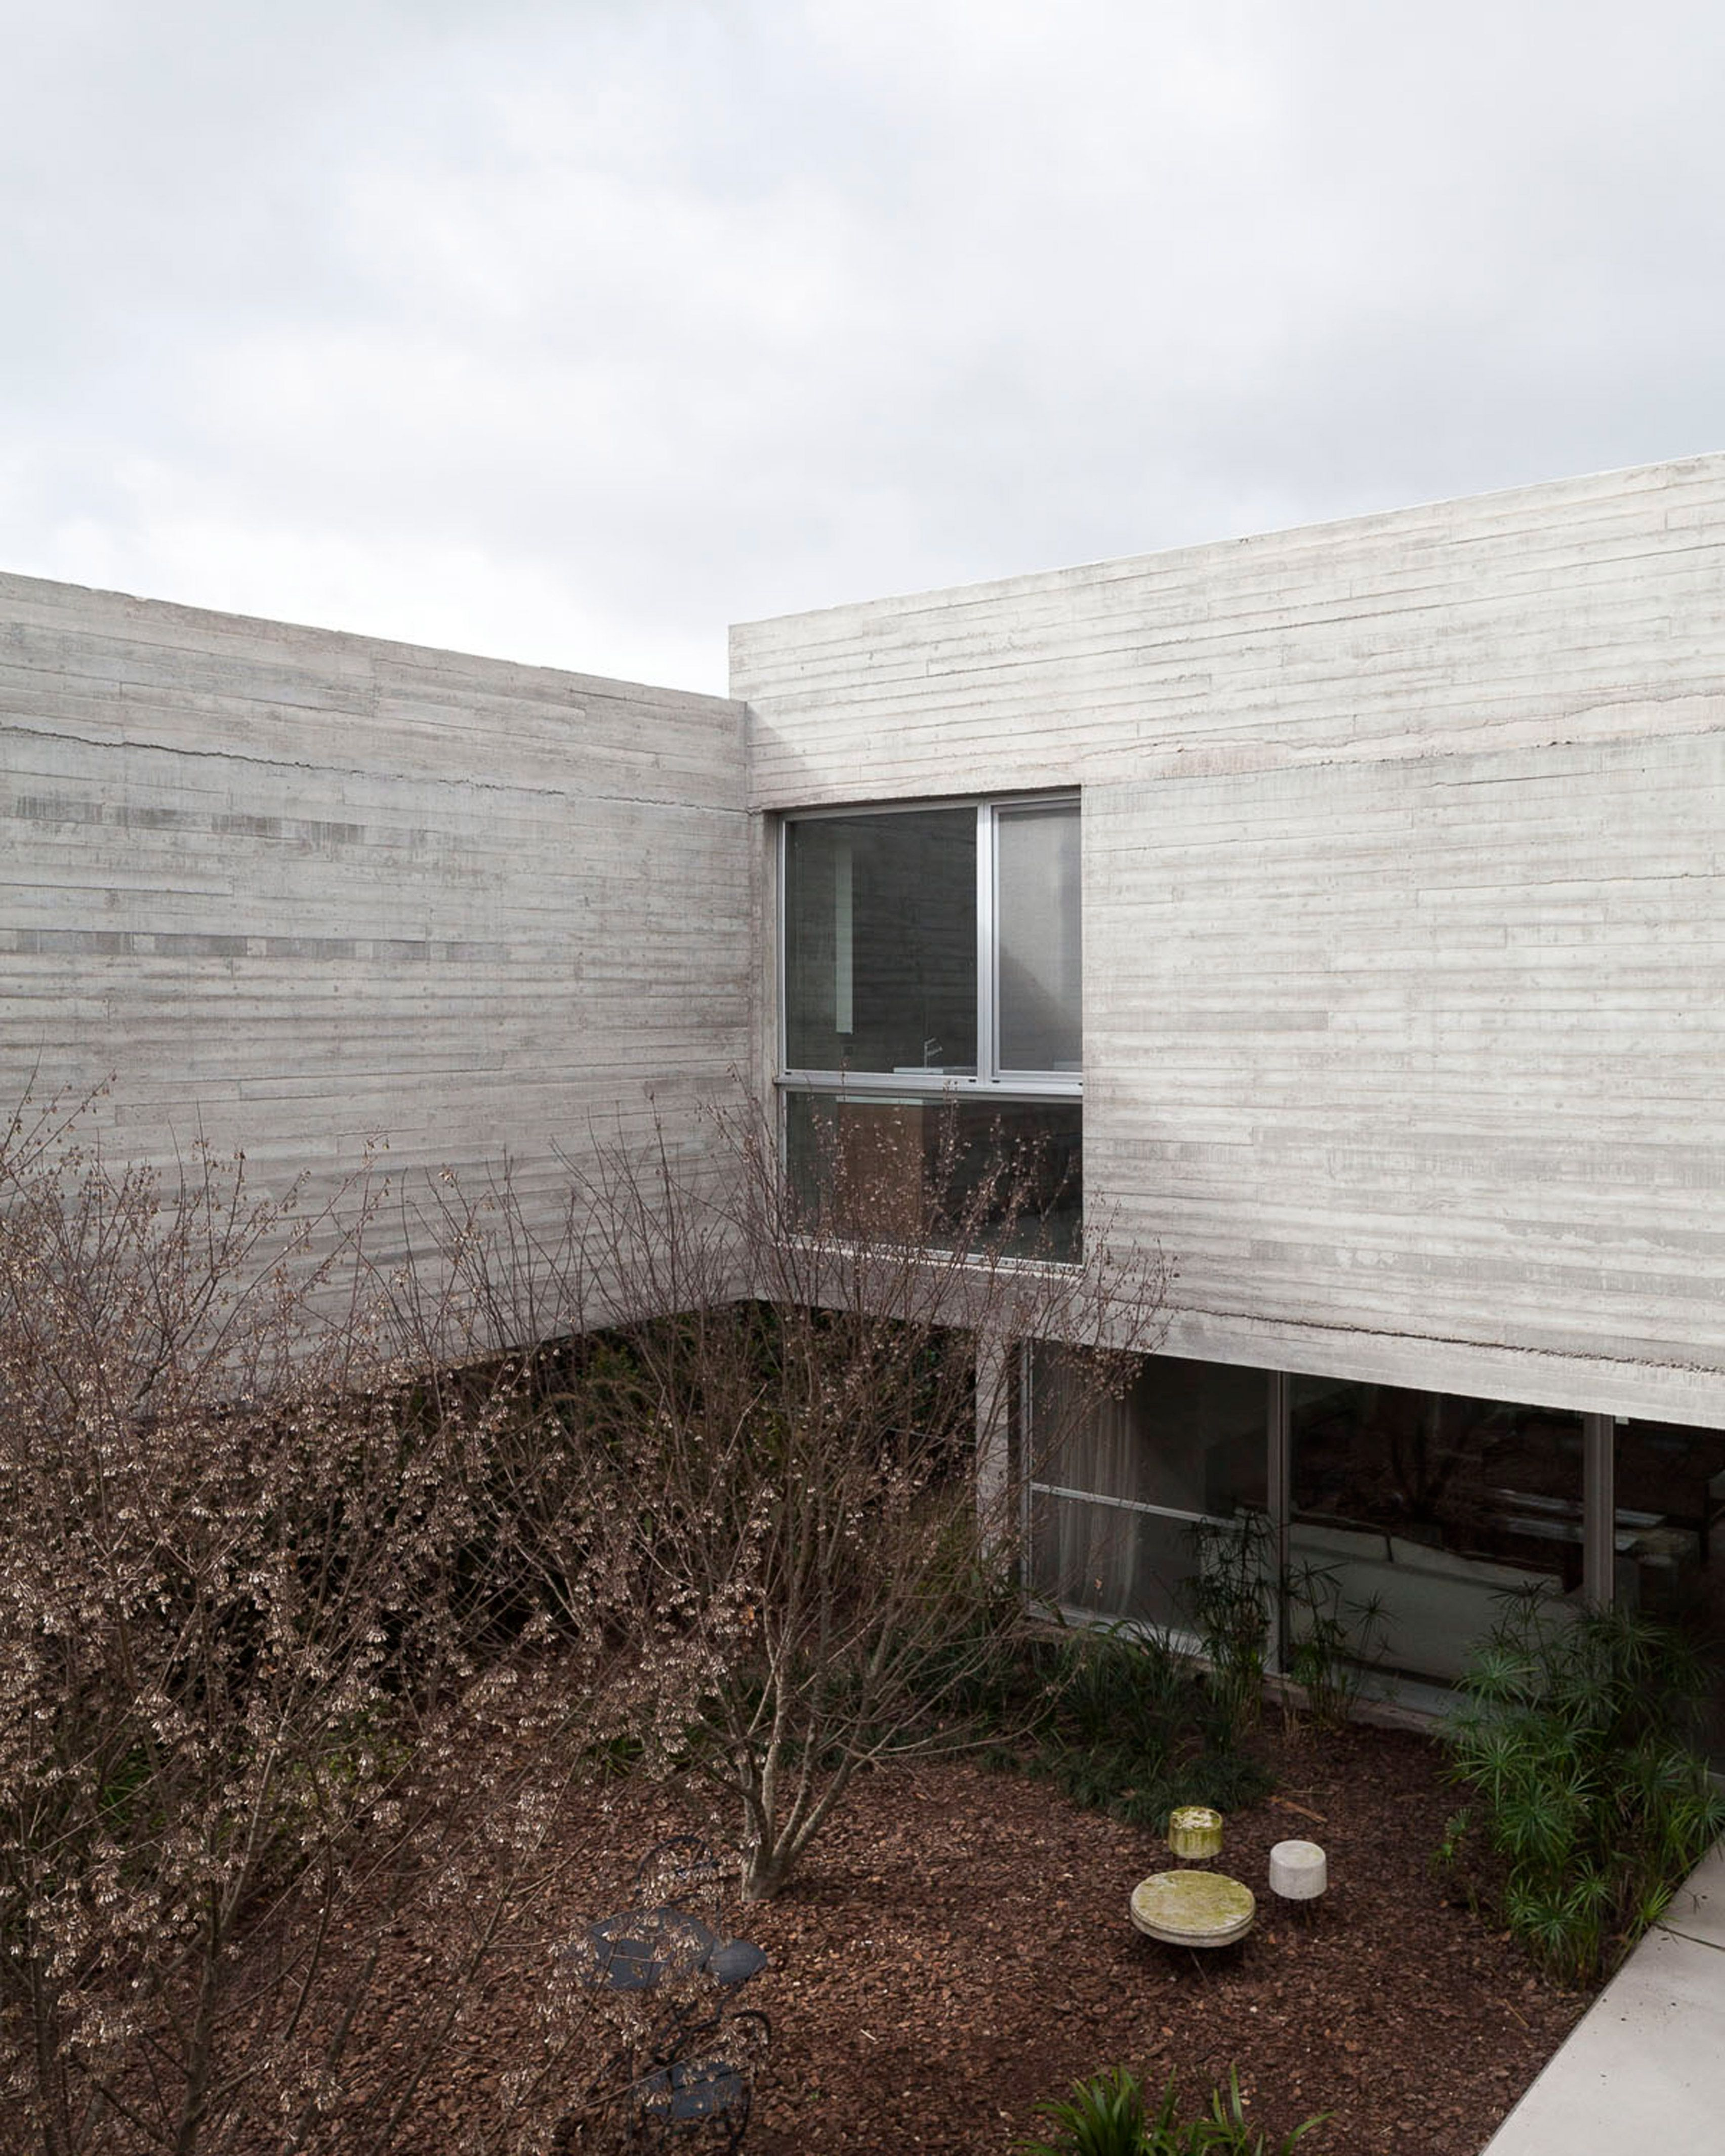 Textured Concrete Walls Frame Lake Views From Buenos Aires House By Federico Sartor Concrete House Frames On Wall Concrete Wall